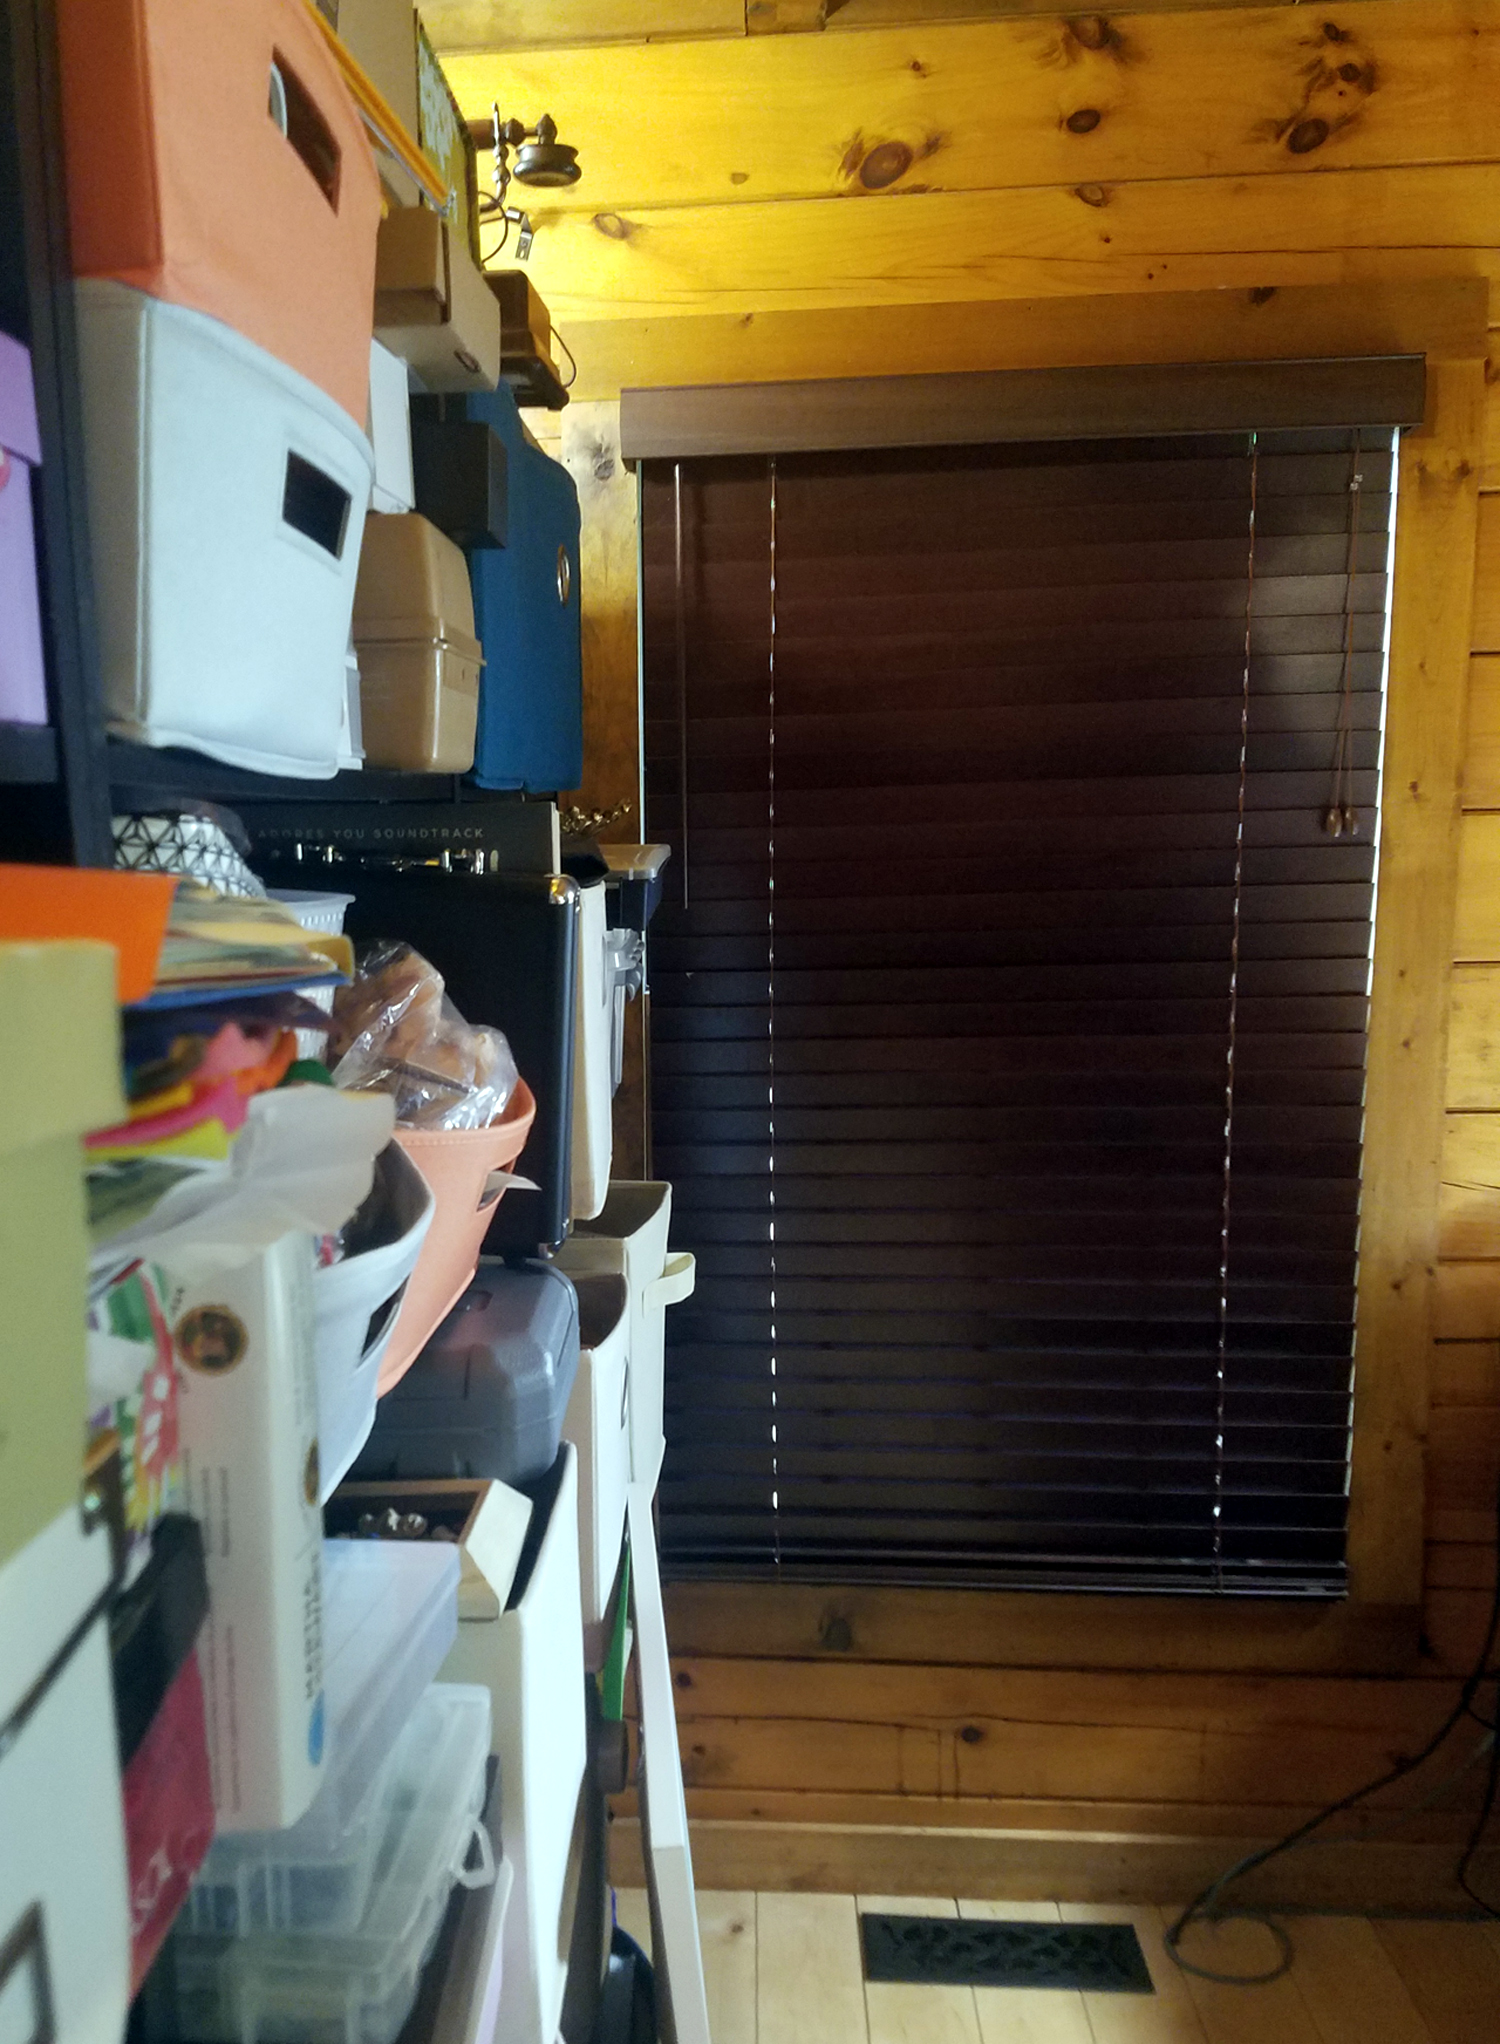 Review: I Installed Custom Zebra Blinds in My Craft Room and They Look Great! KnitHacker Readers Save 5% For a Limited Time!